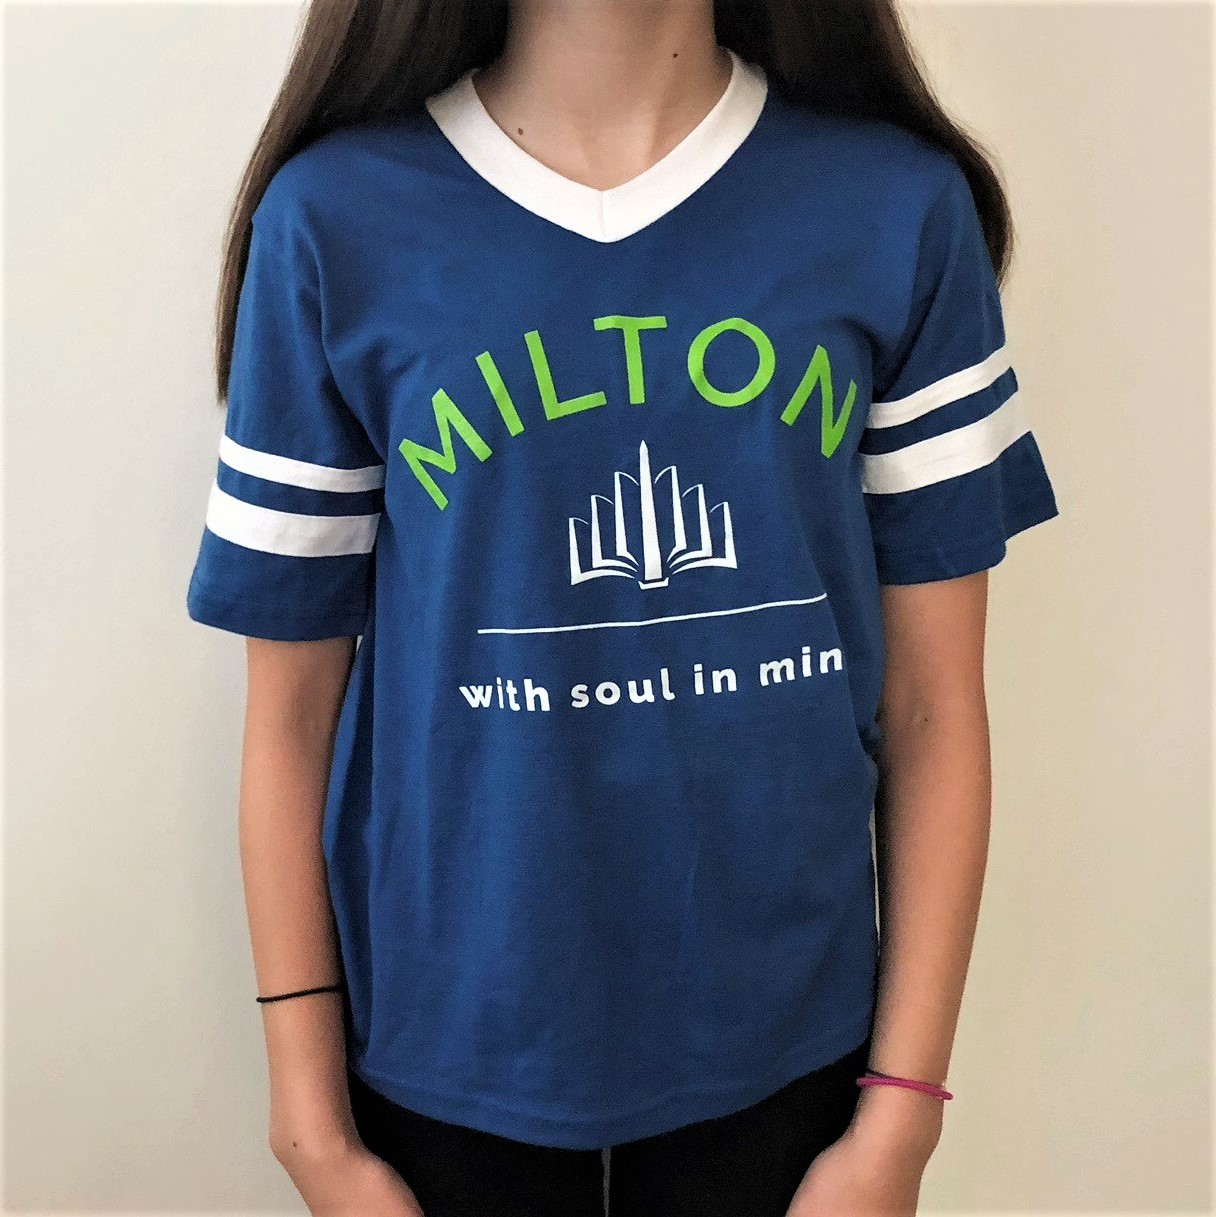 A bright blue short sleeved T-shirt with white stripes on the sleeves and the MILTON logo large in the center of the shirt.